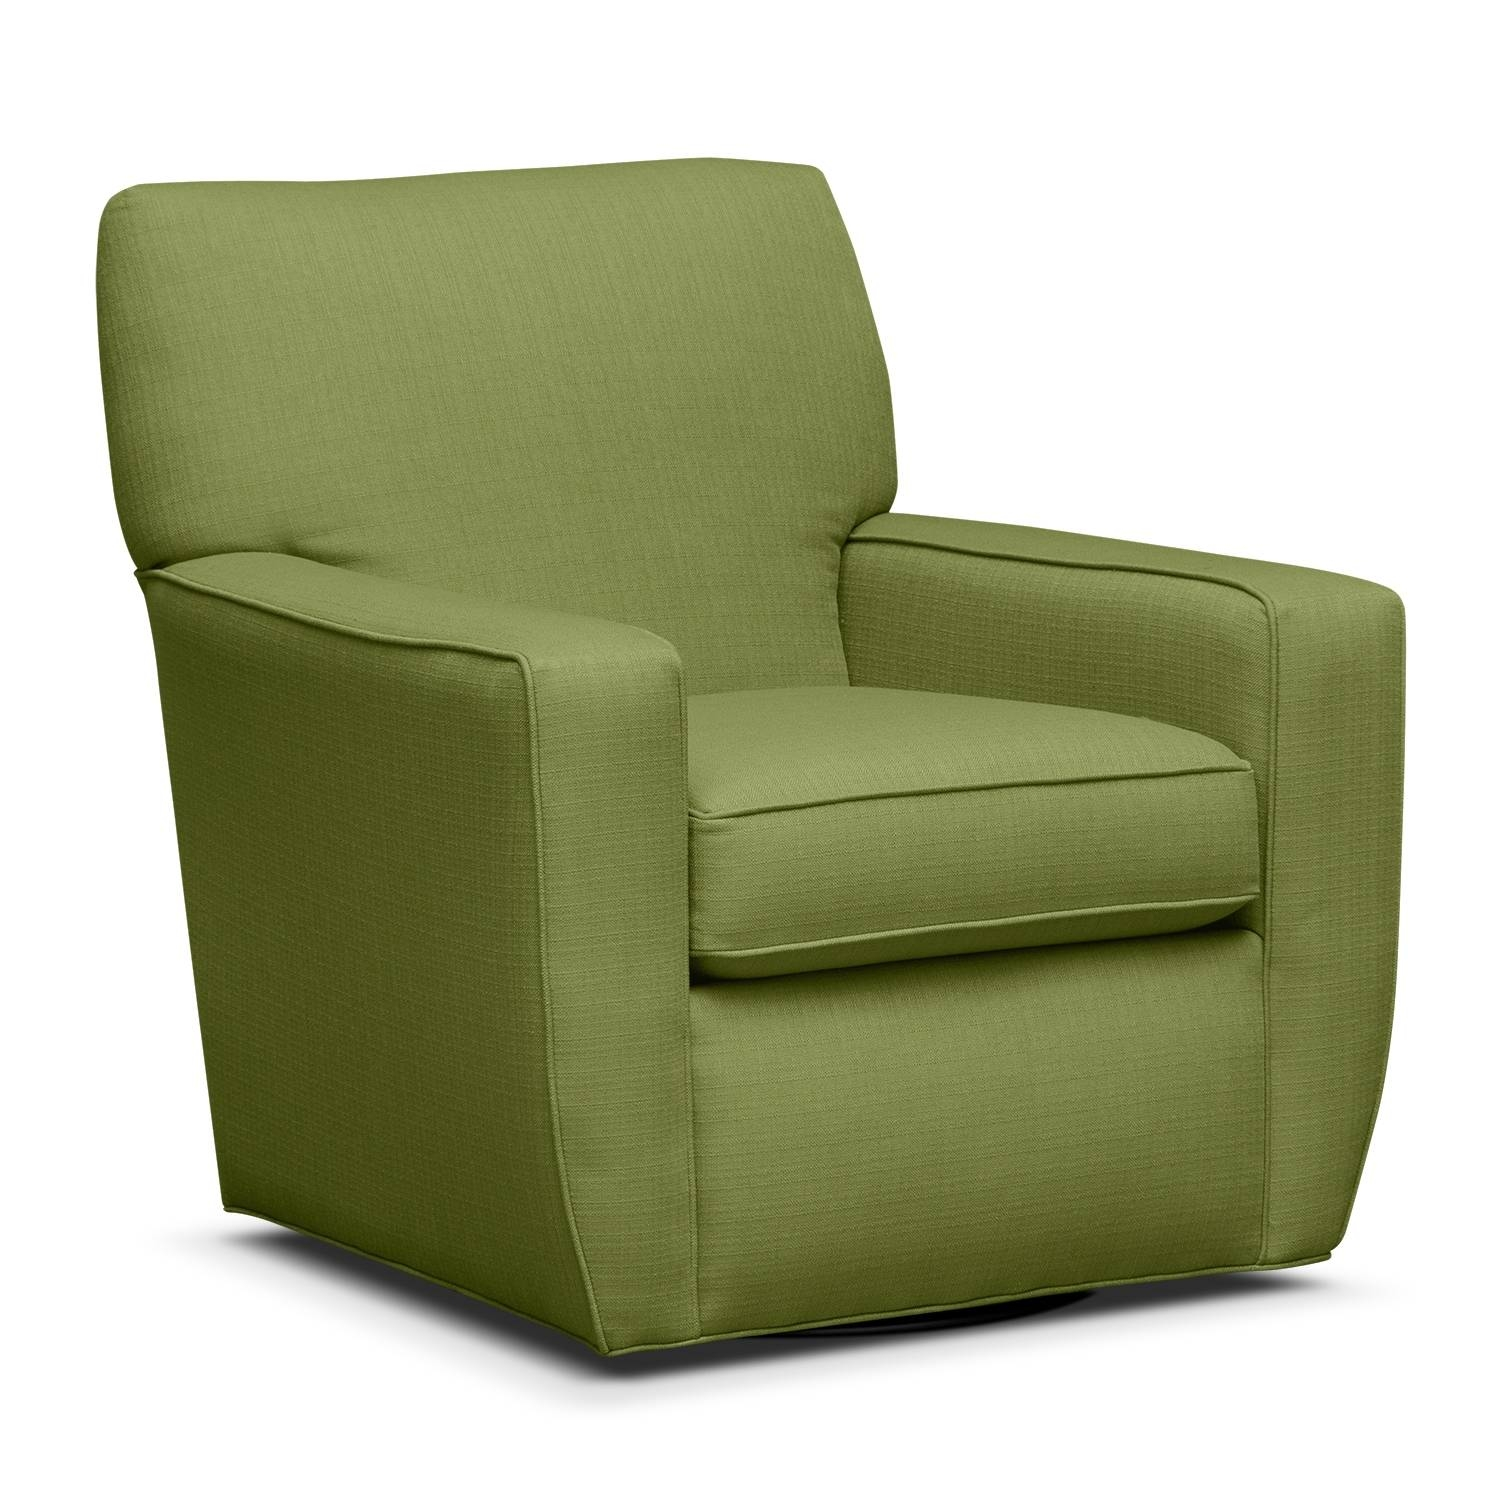 Swivel Arm Chairs Living Room - Home Design Ideas in Sofa With Swivel Chair (Image 28 of 30)